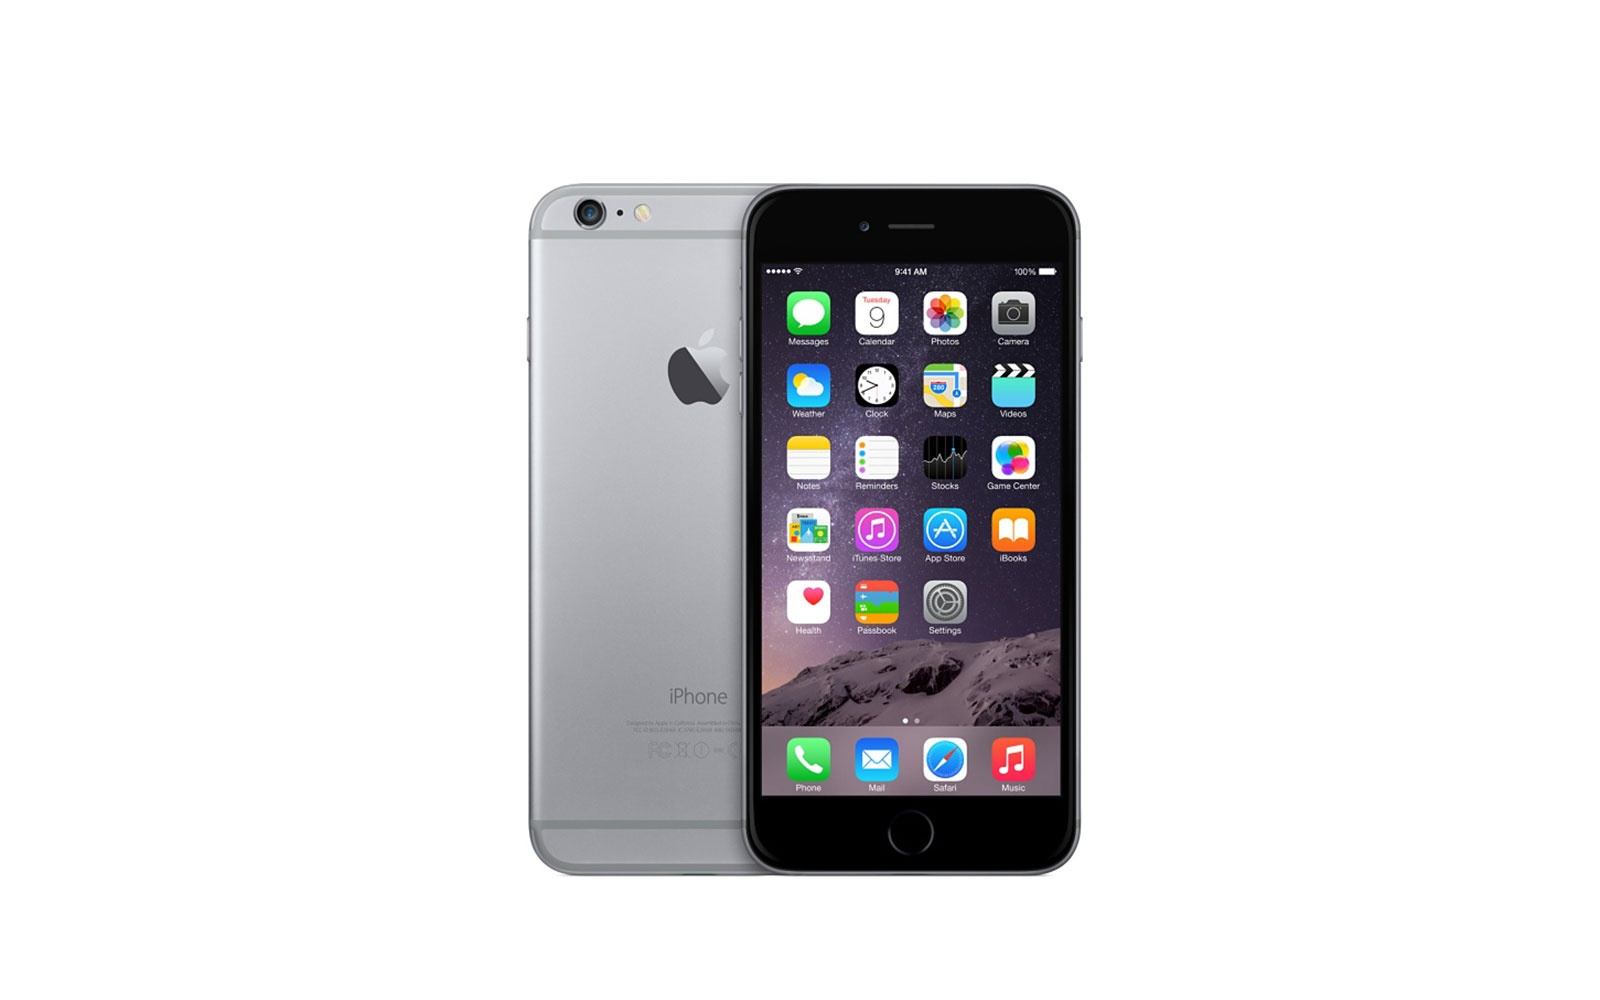 Apple iPhone 6 Plus travel gadget